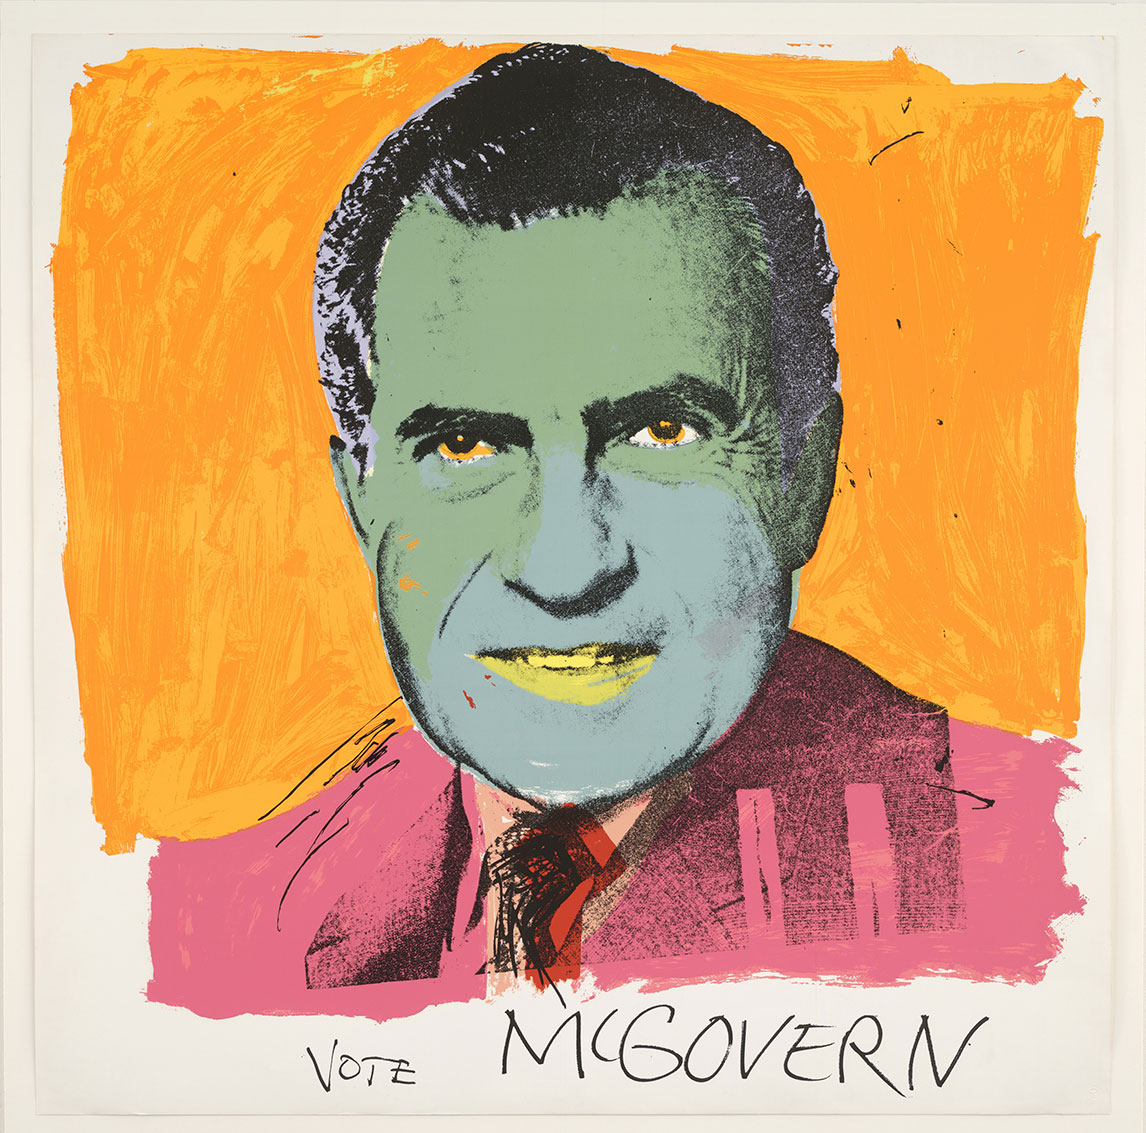 Andy Warhol (1928–1987), Vote McGovern. Screenprint, 1972. © 2016 The Andy Warhol Foundation for the Visual Arts, Inc./Artists Rights Society (ARS), New York and DACS, London.